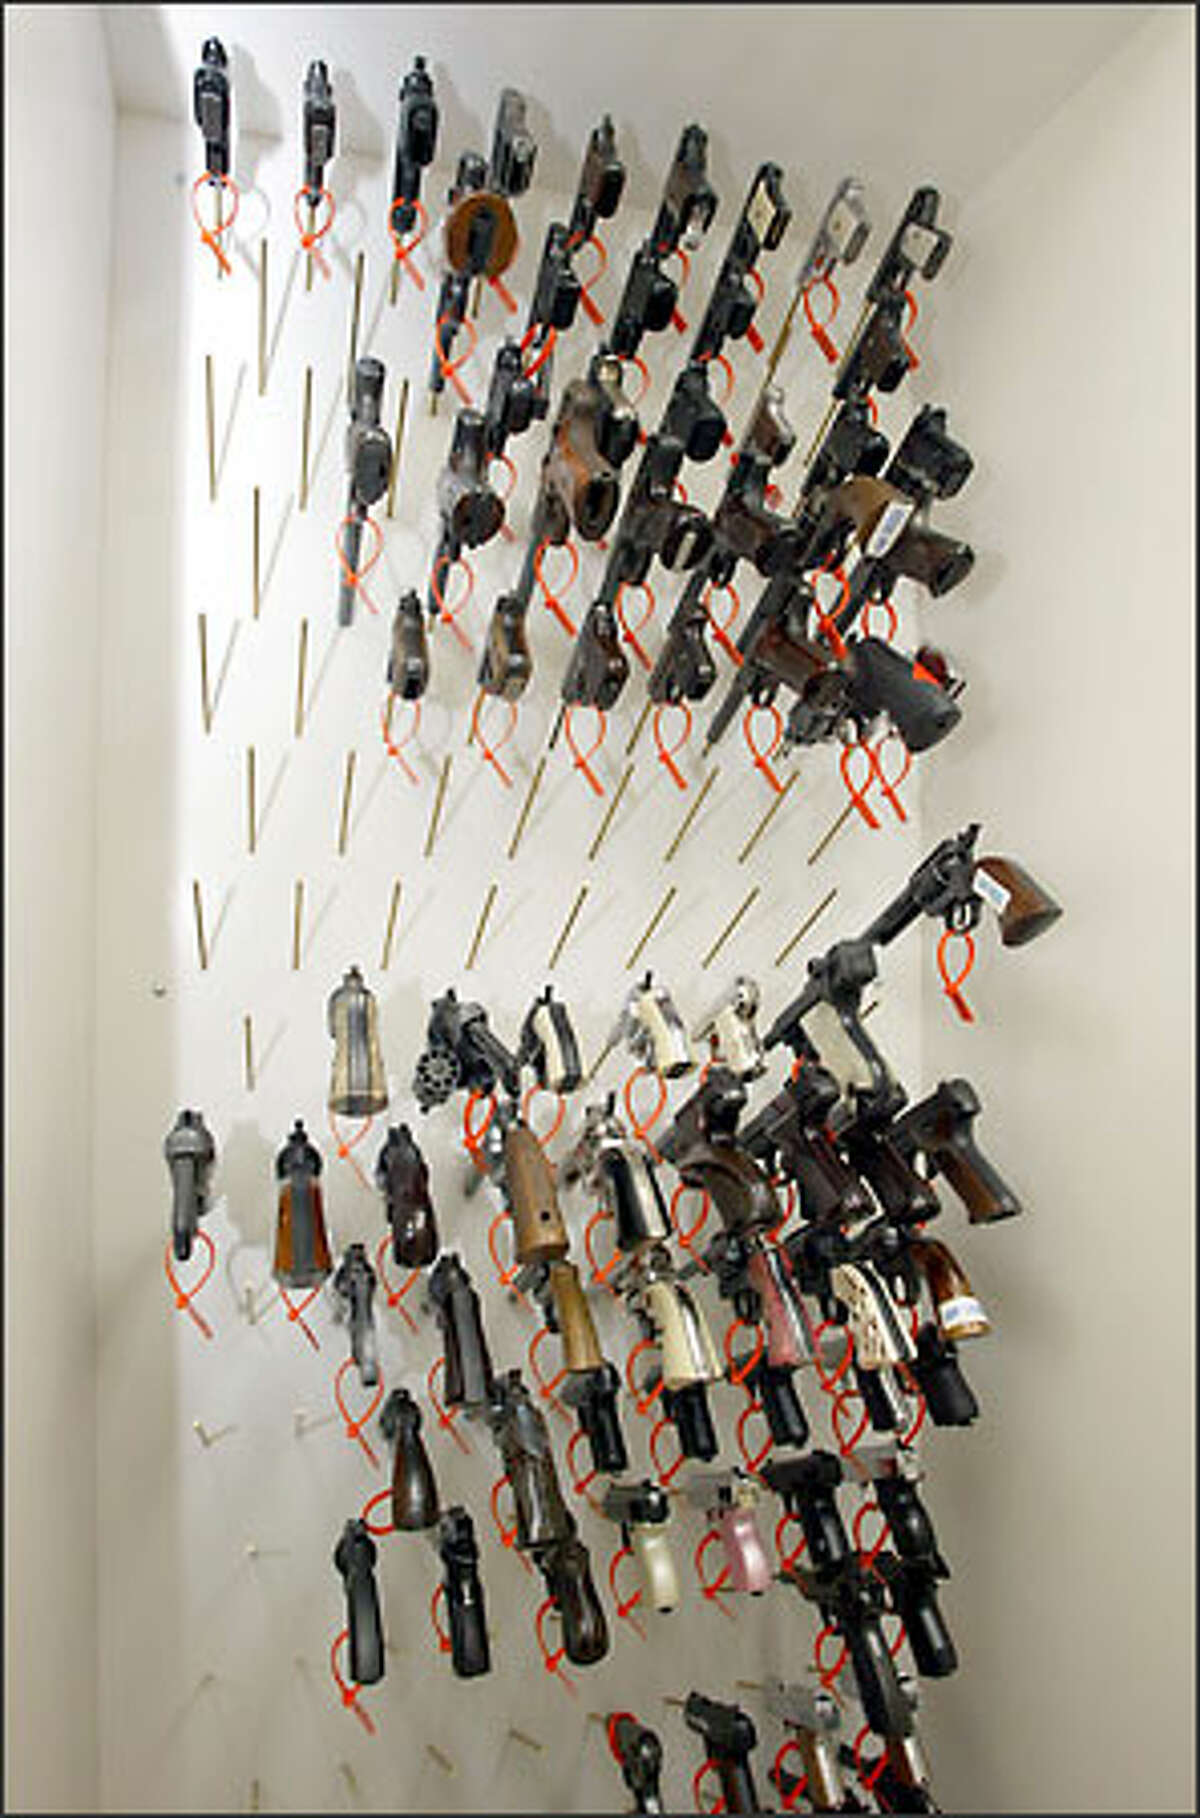 Forensic scientists at the crime lab have started a huge firearms collection for use in comparison and identification of weapons.